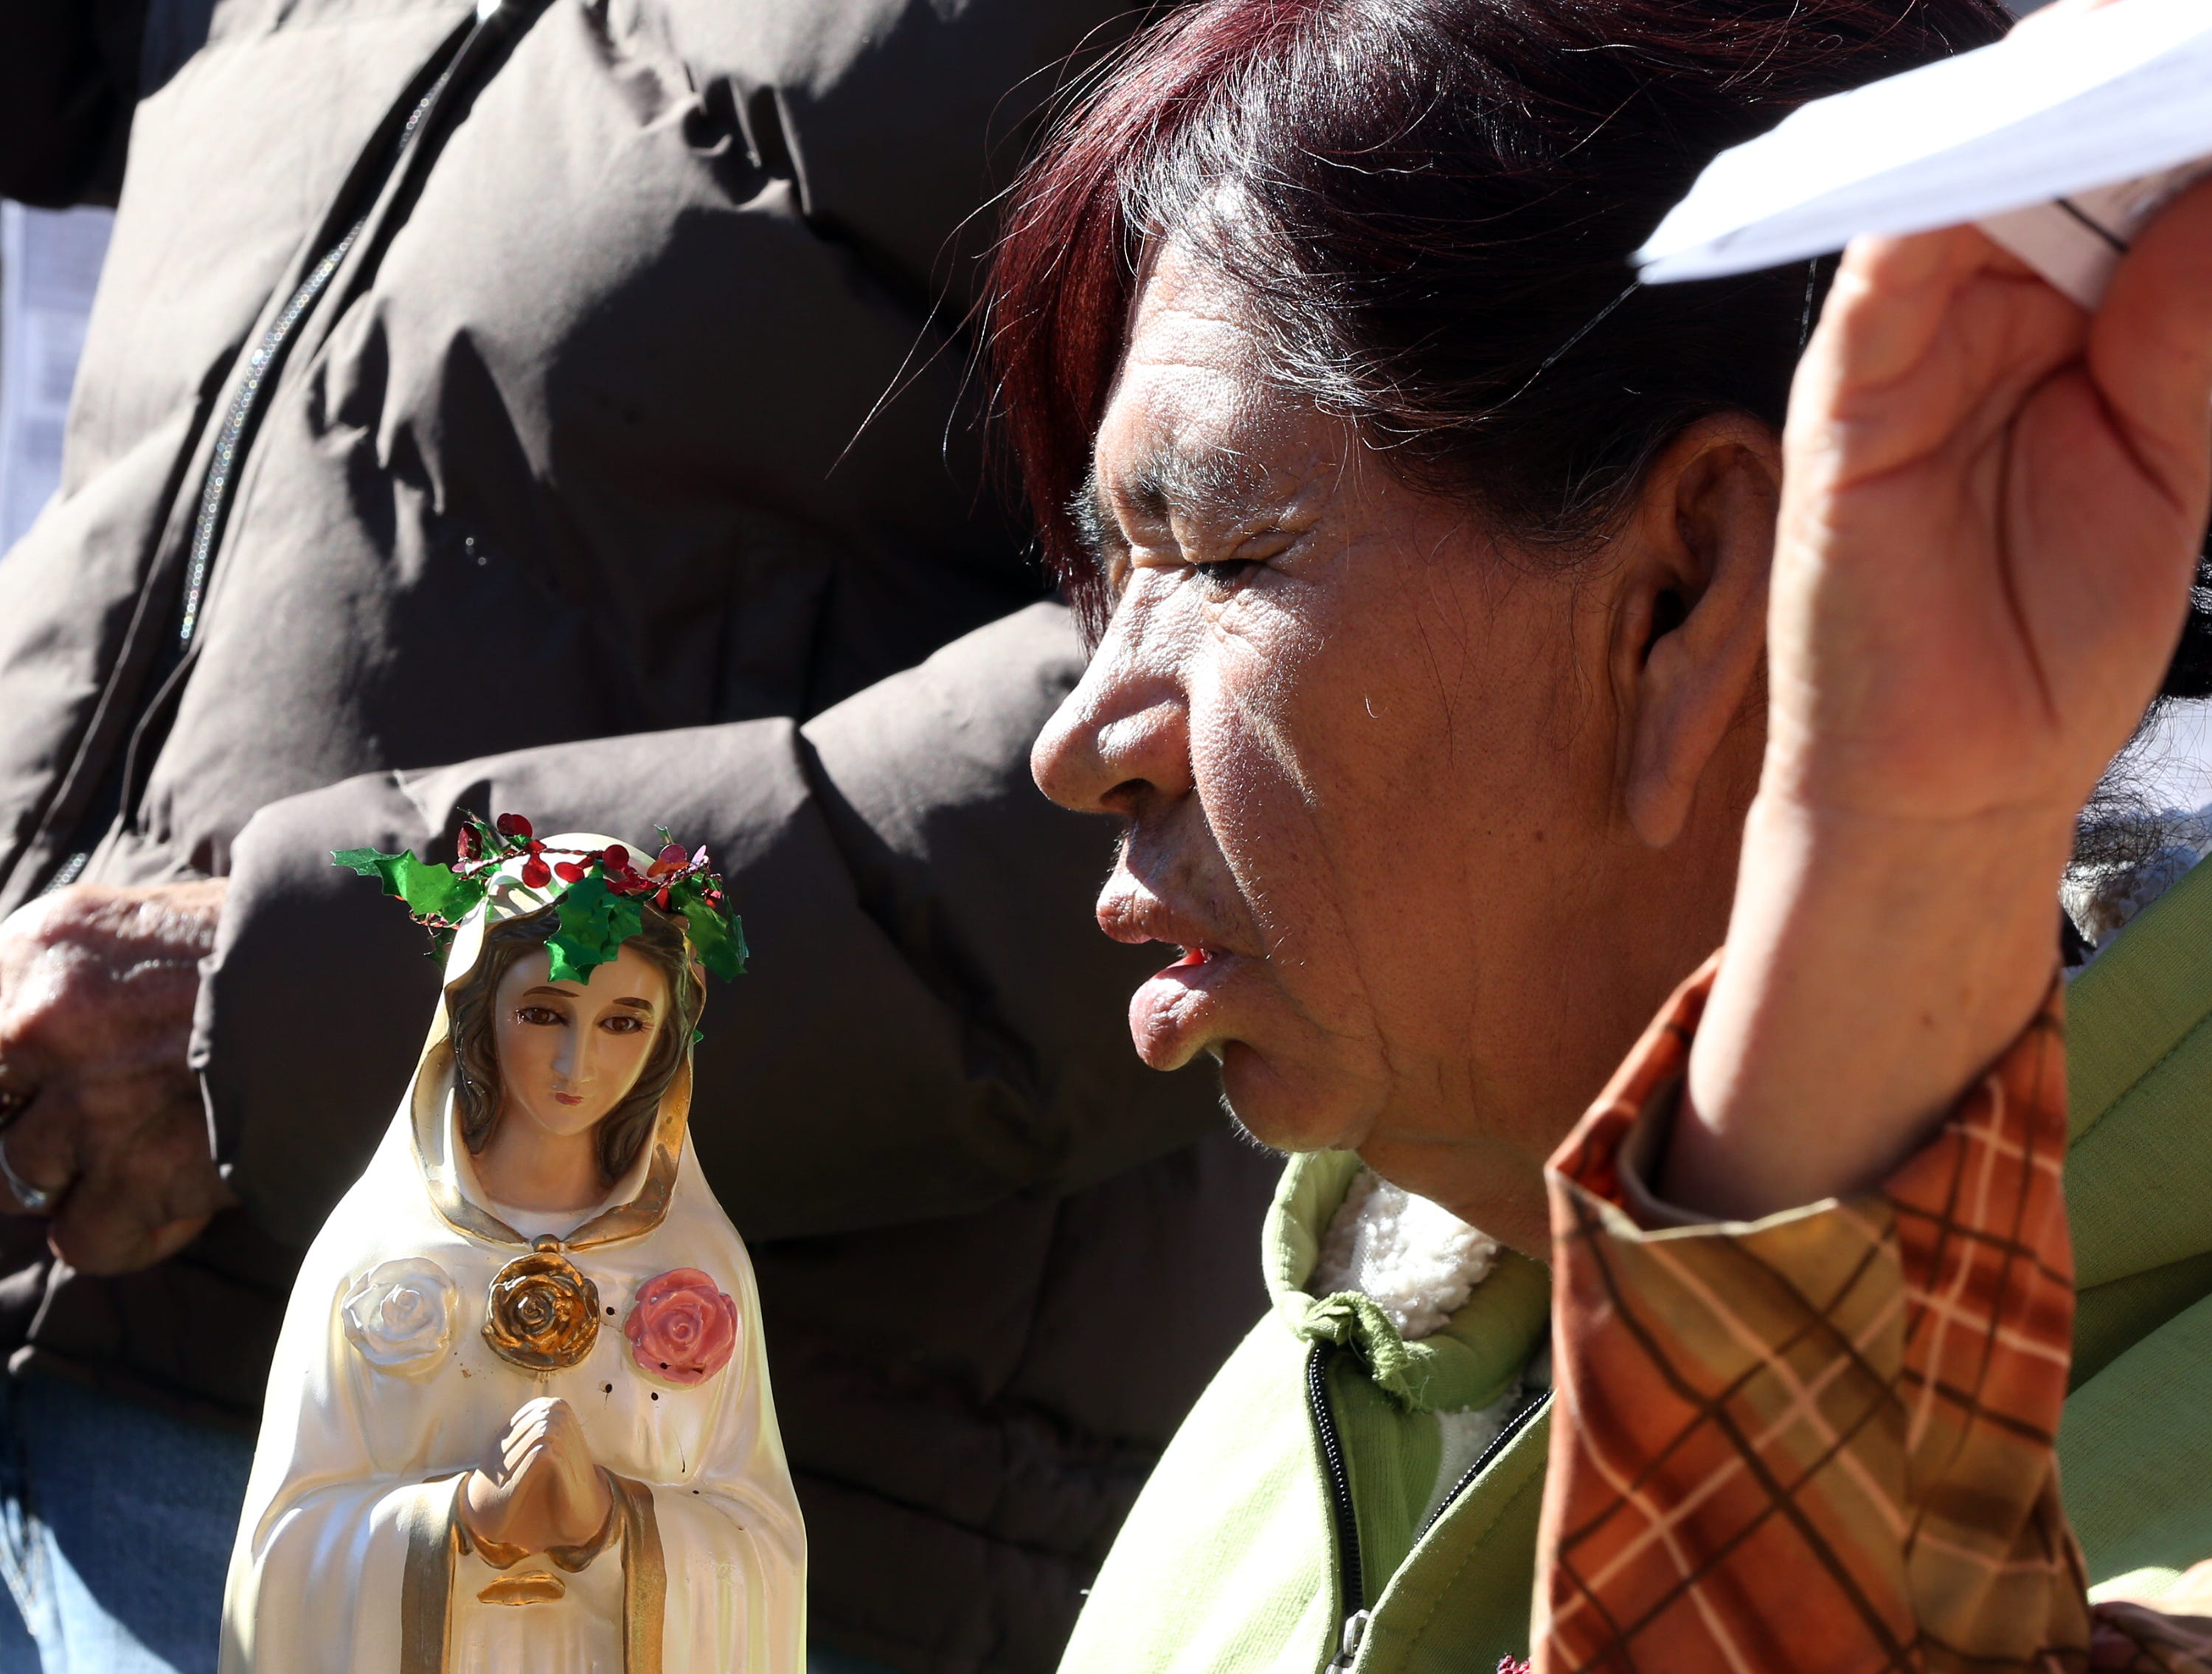 A Mexican woman takes part in the annual Border Mass in the Juarez area of Anapra Saturday.